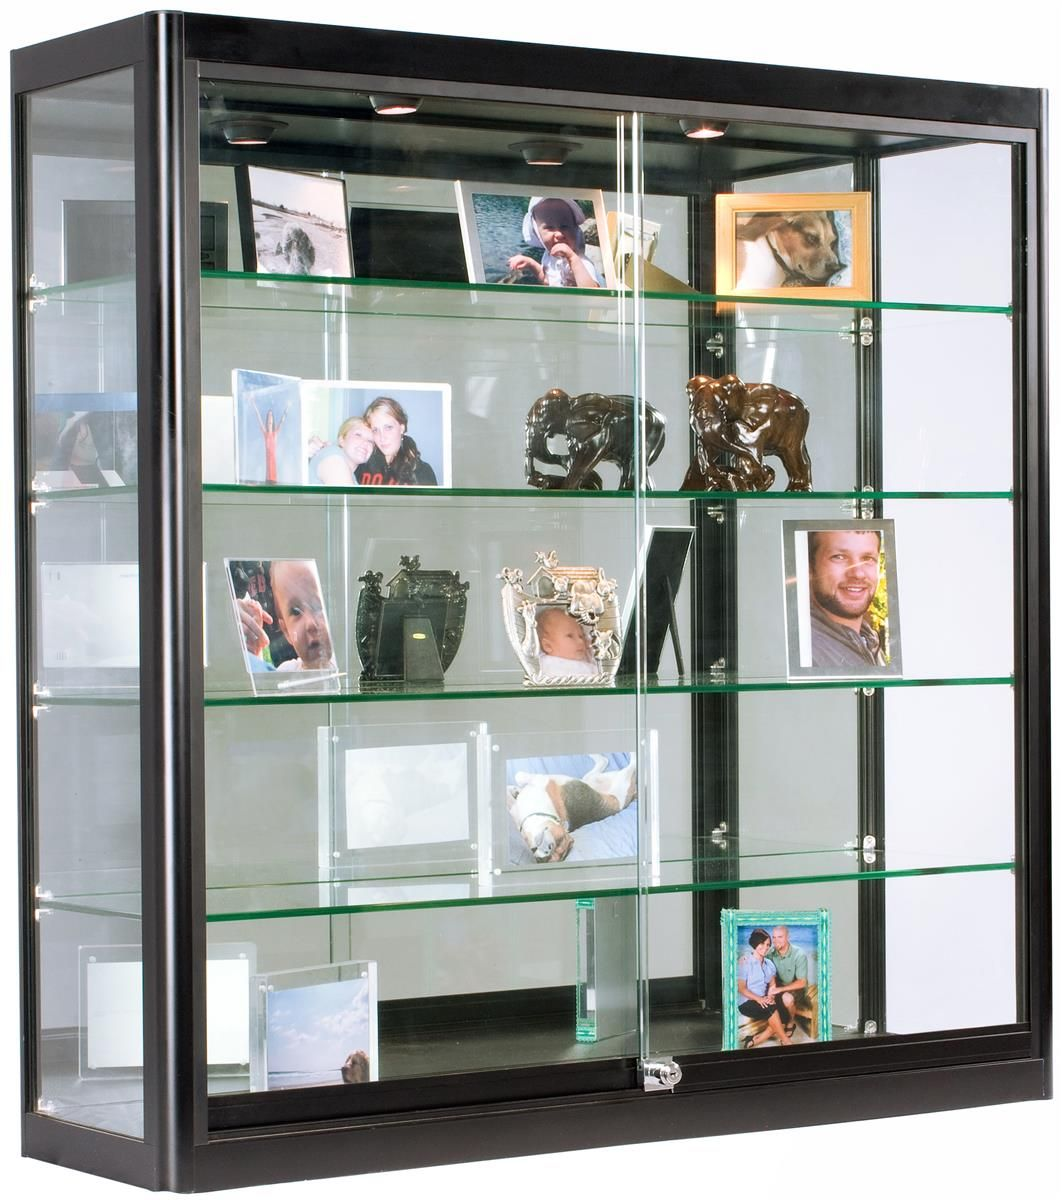 3x3 Wall Mounted Display Case W Mirror Back 2 Top Led Lights Locking Black Wall Mounted Display Cabinets Glass Cabinets Display Glass Cabinet Doors